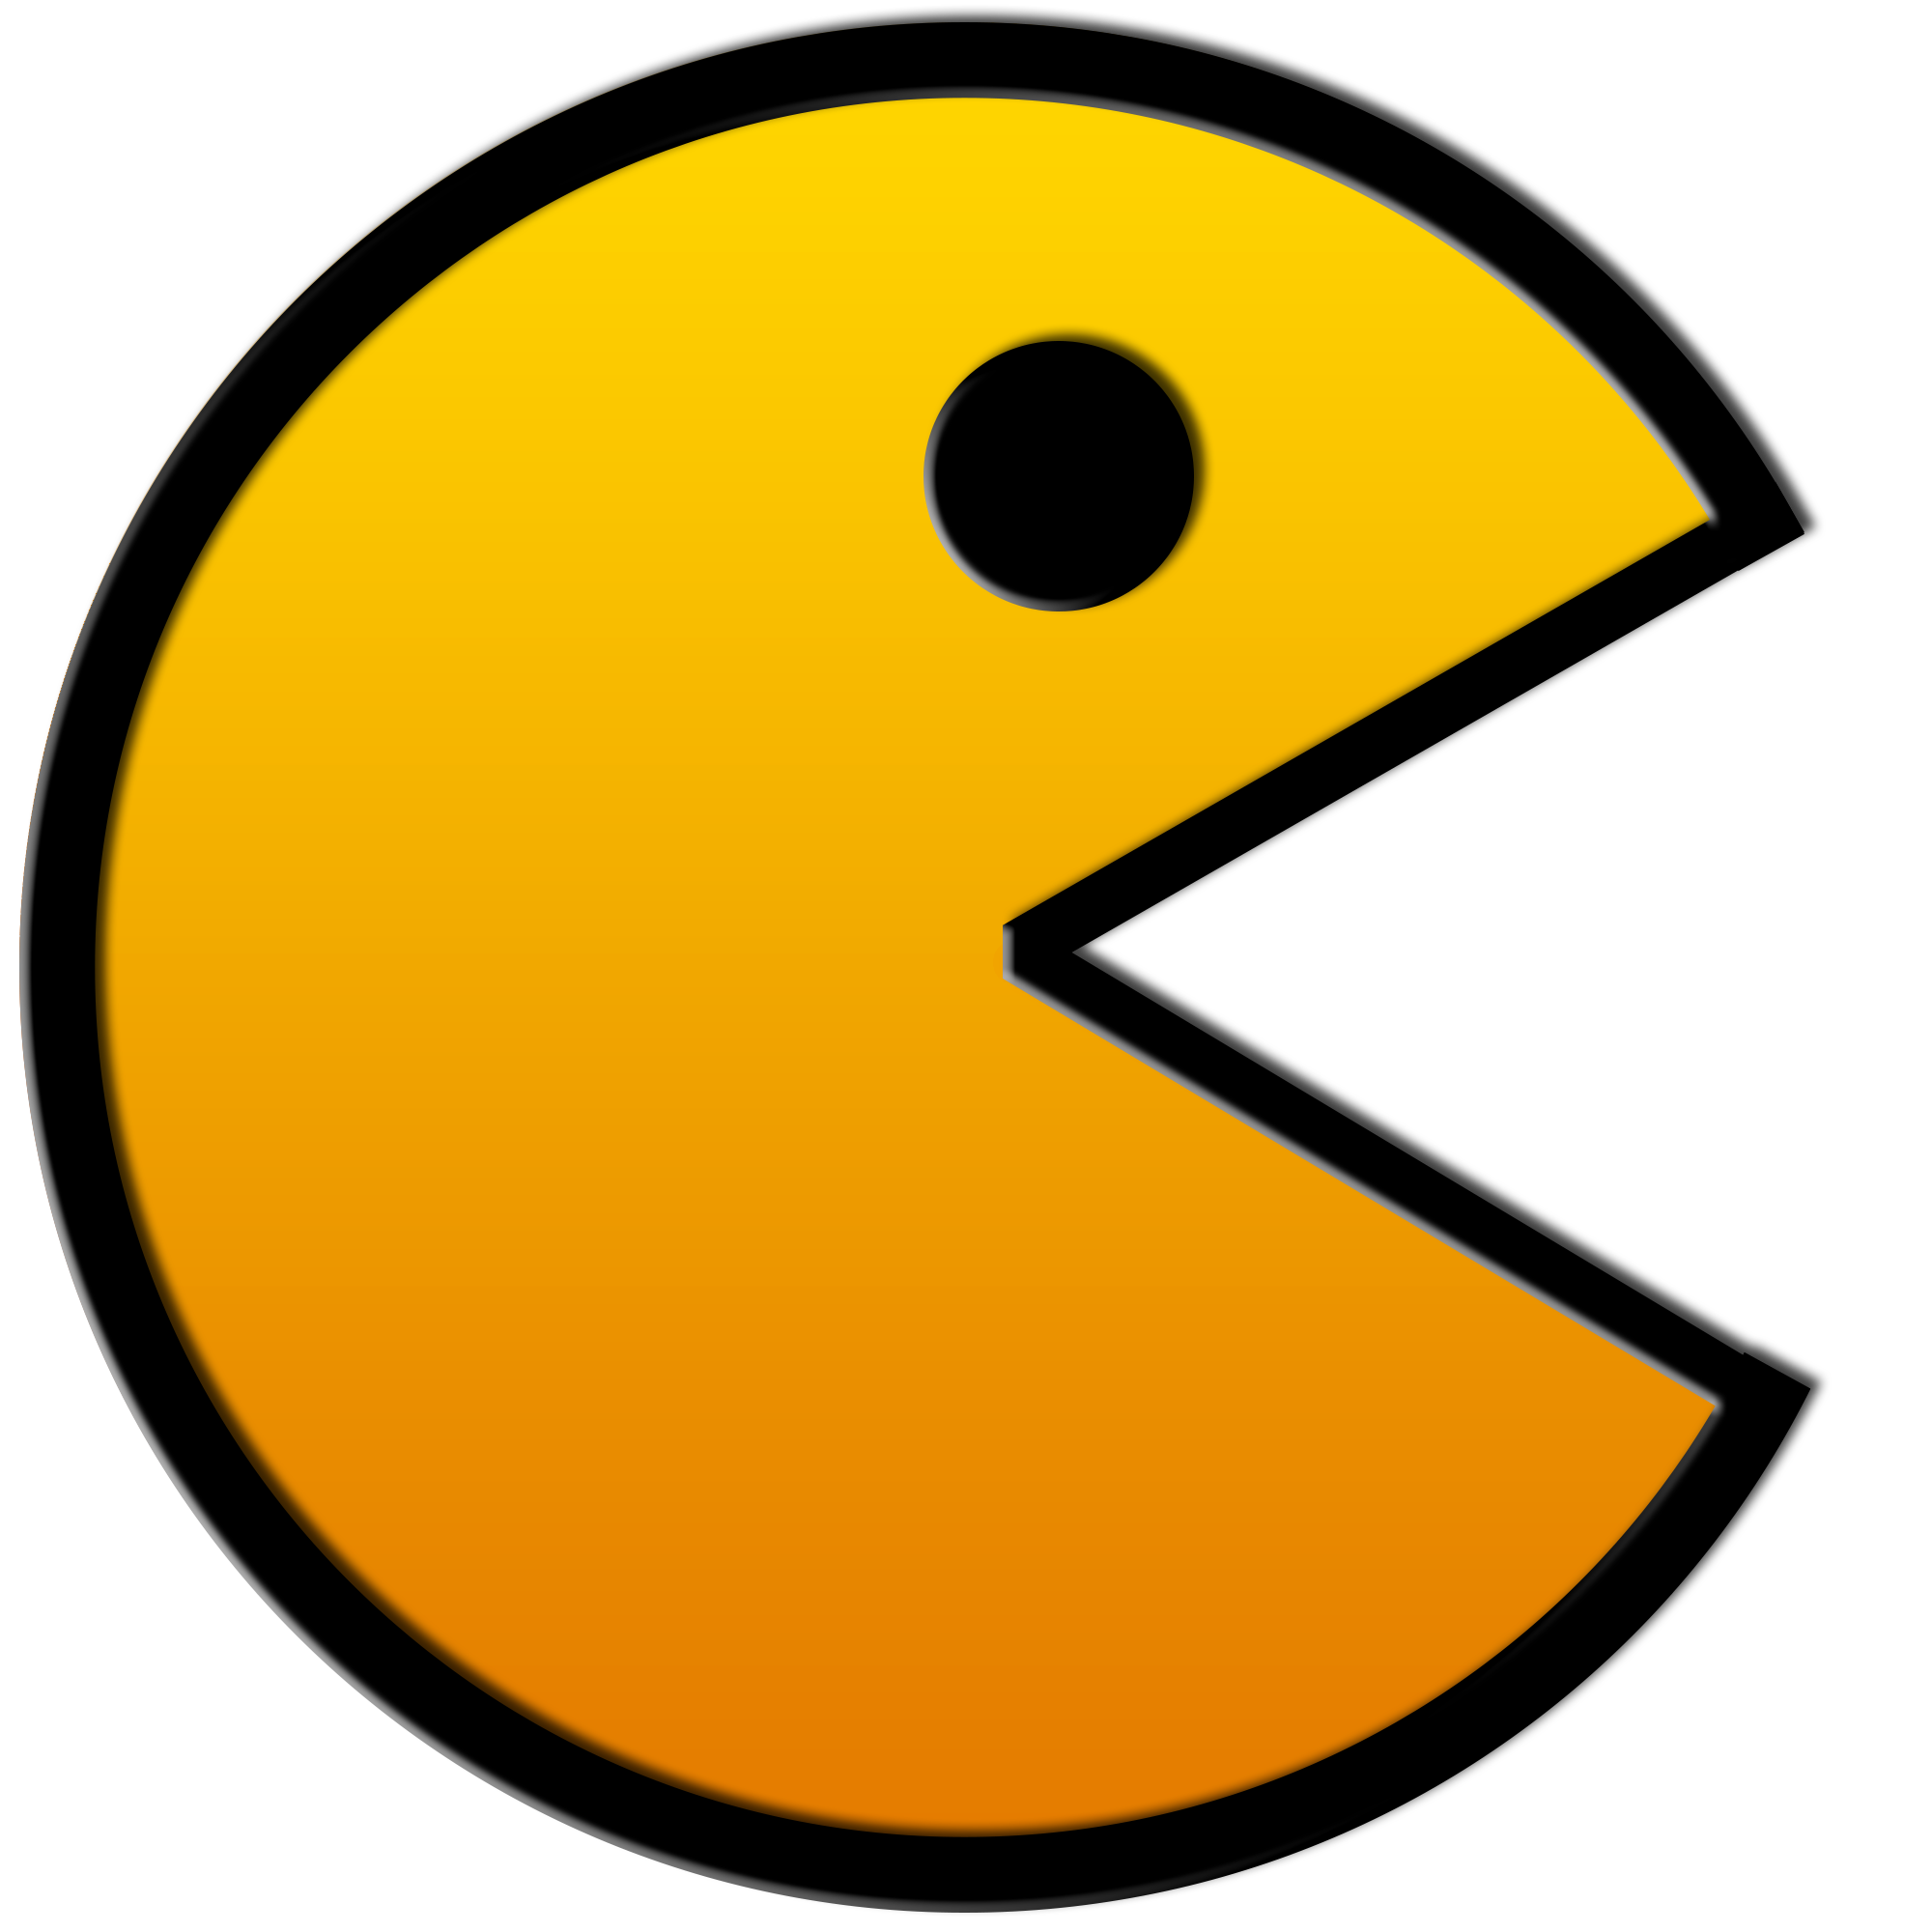 Pac man png. Image bloons conception wiki